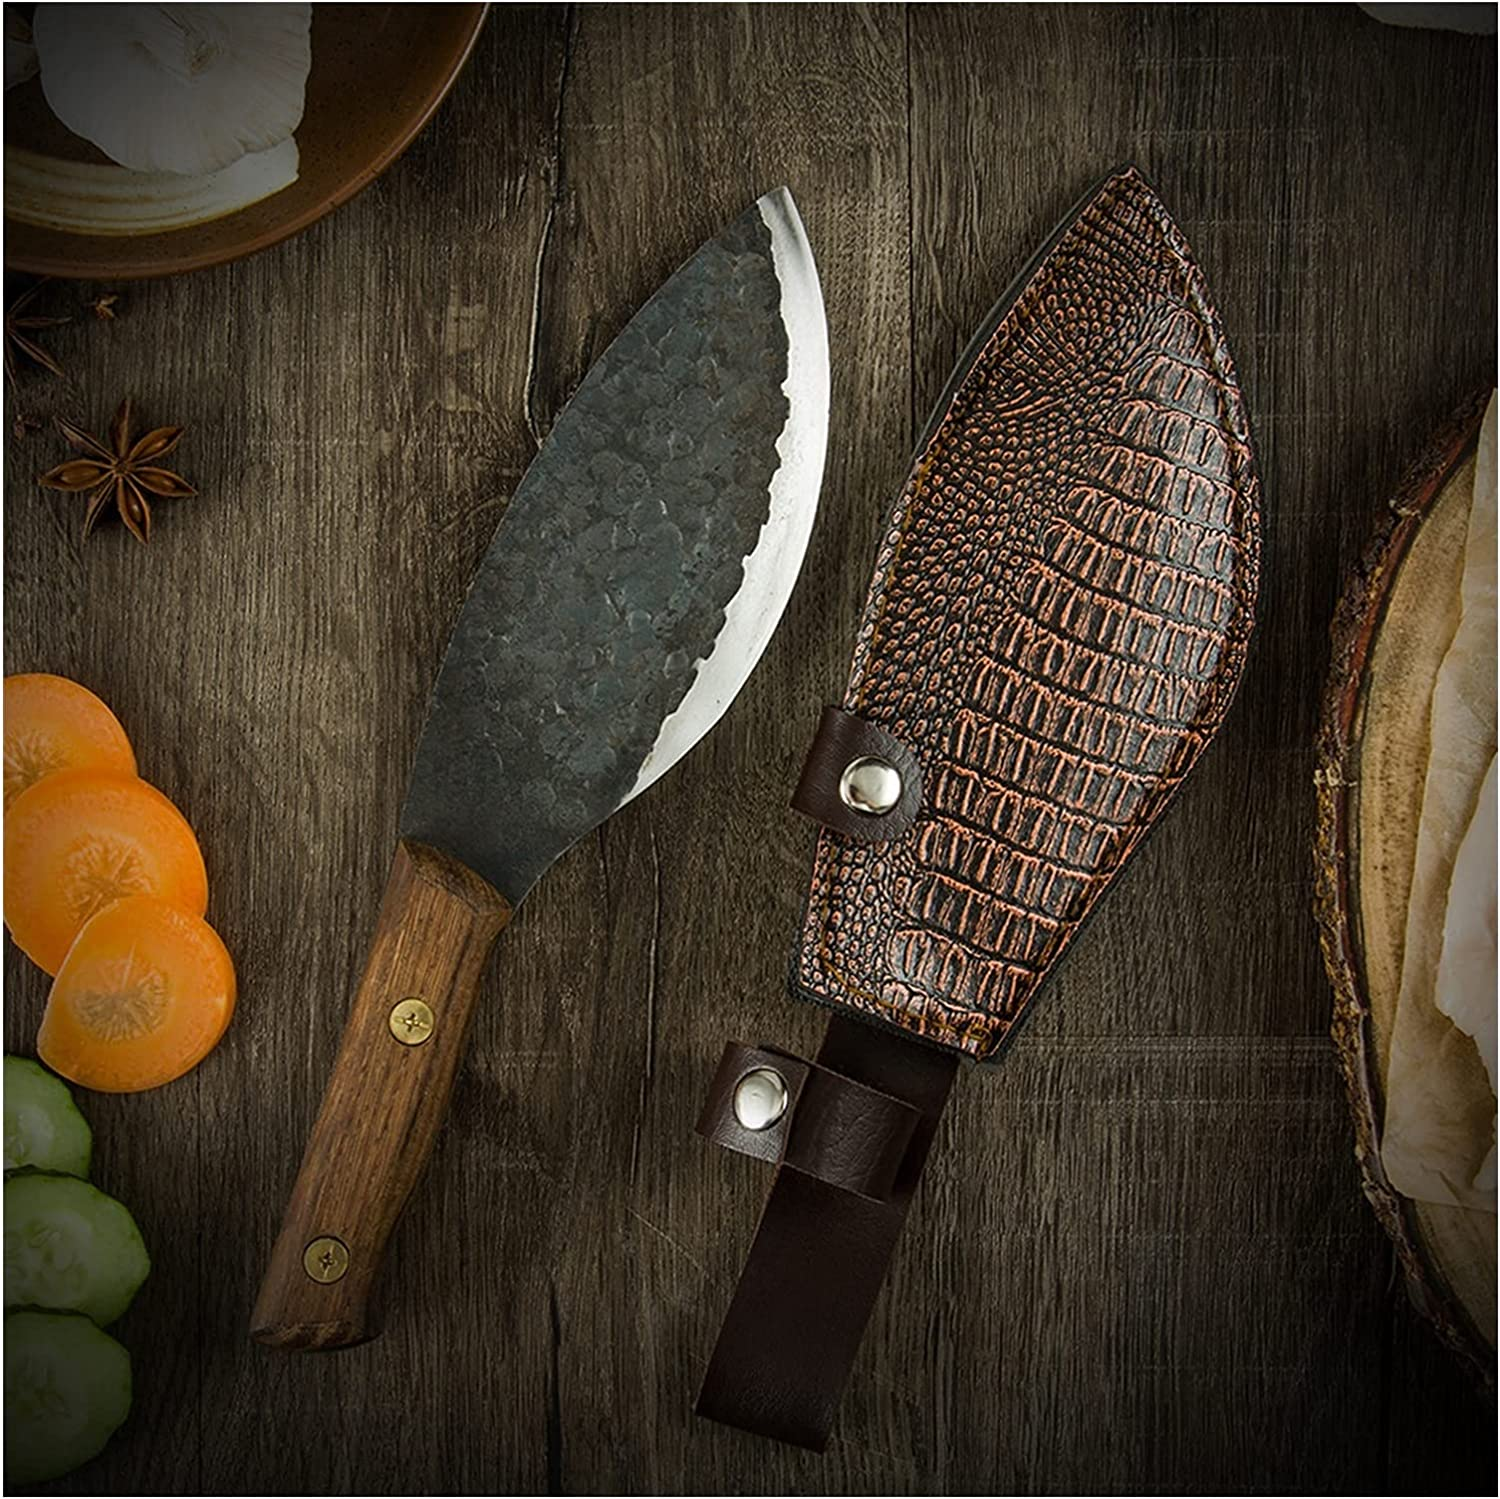 Knife Cleaver Chinese All items free shipping Chopping 6.5 Chop Bone Inch Ch Super Special SALE held